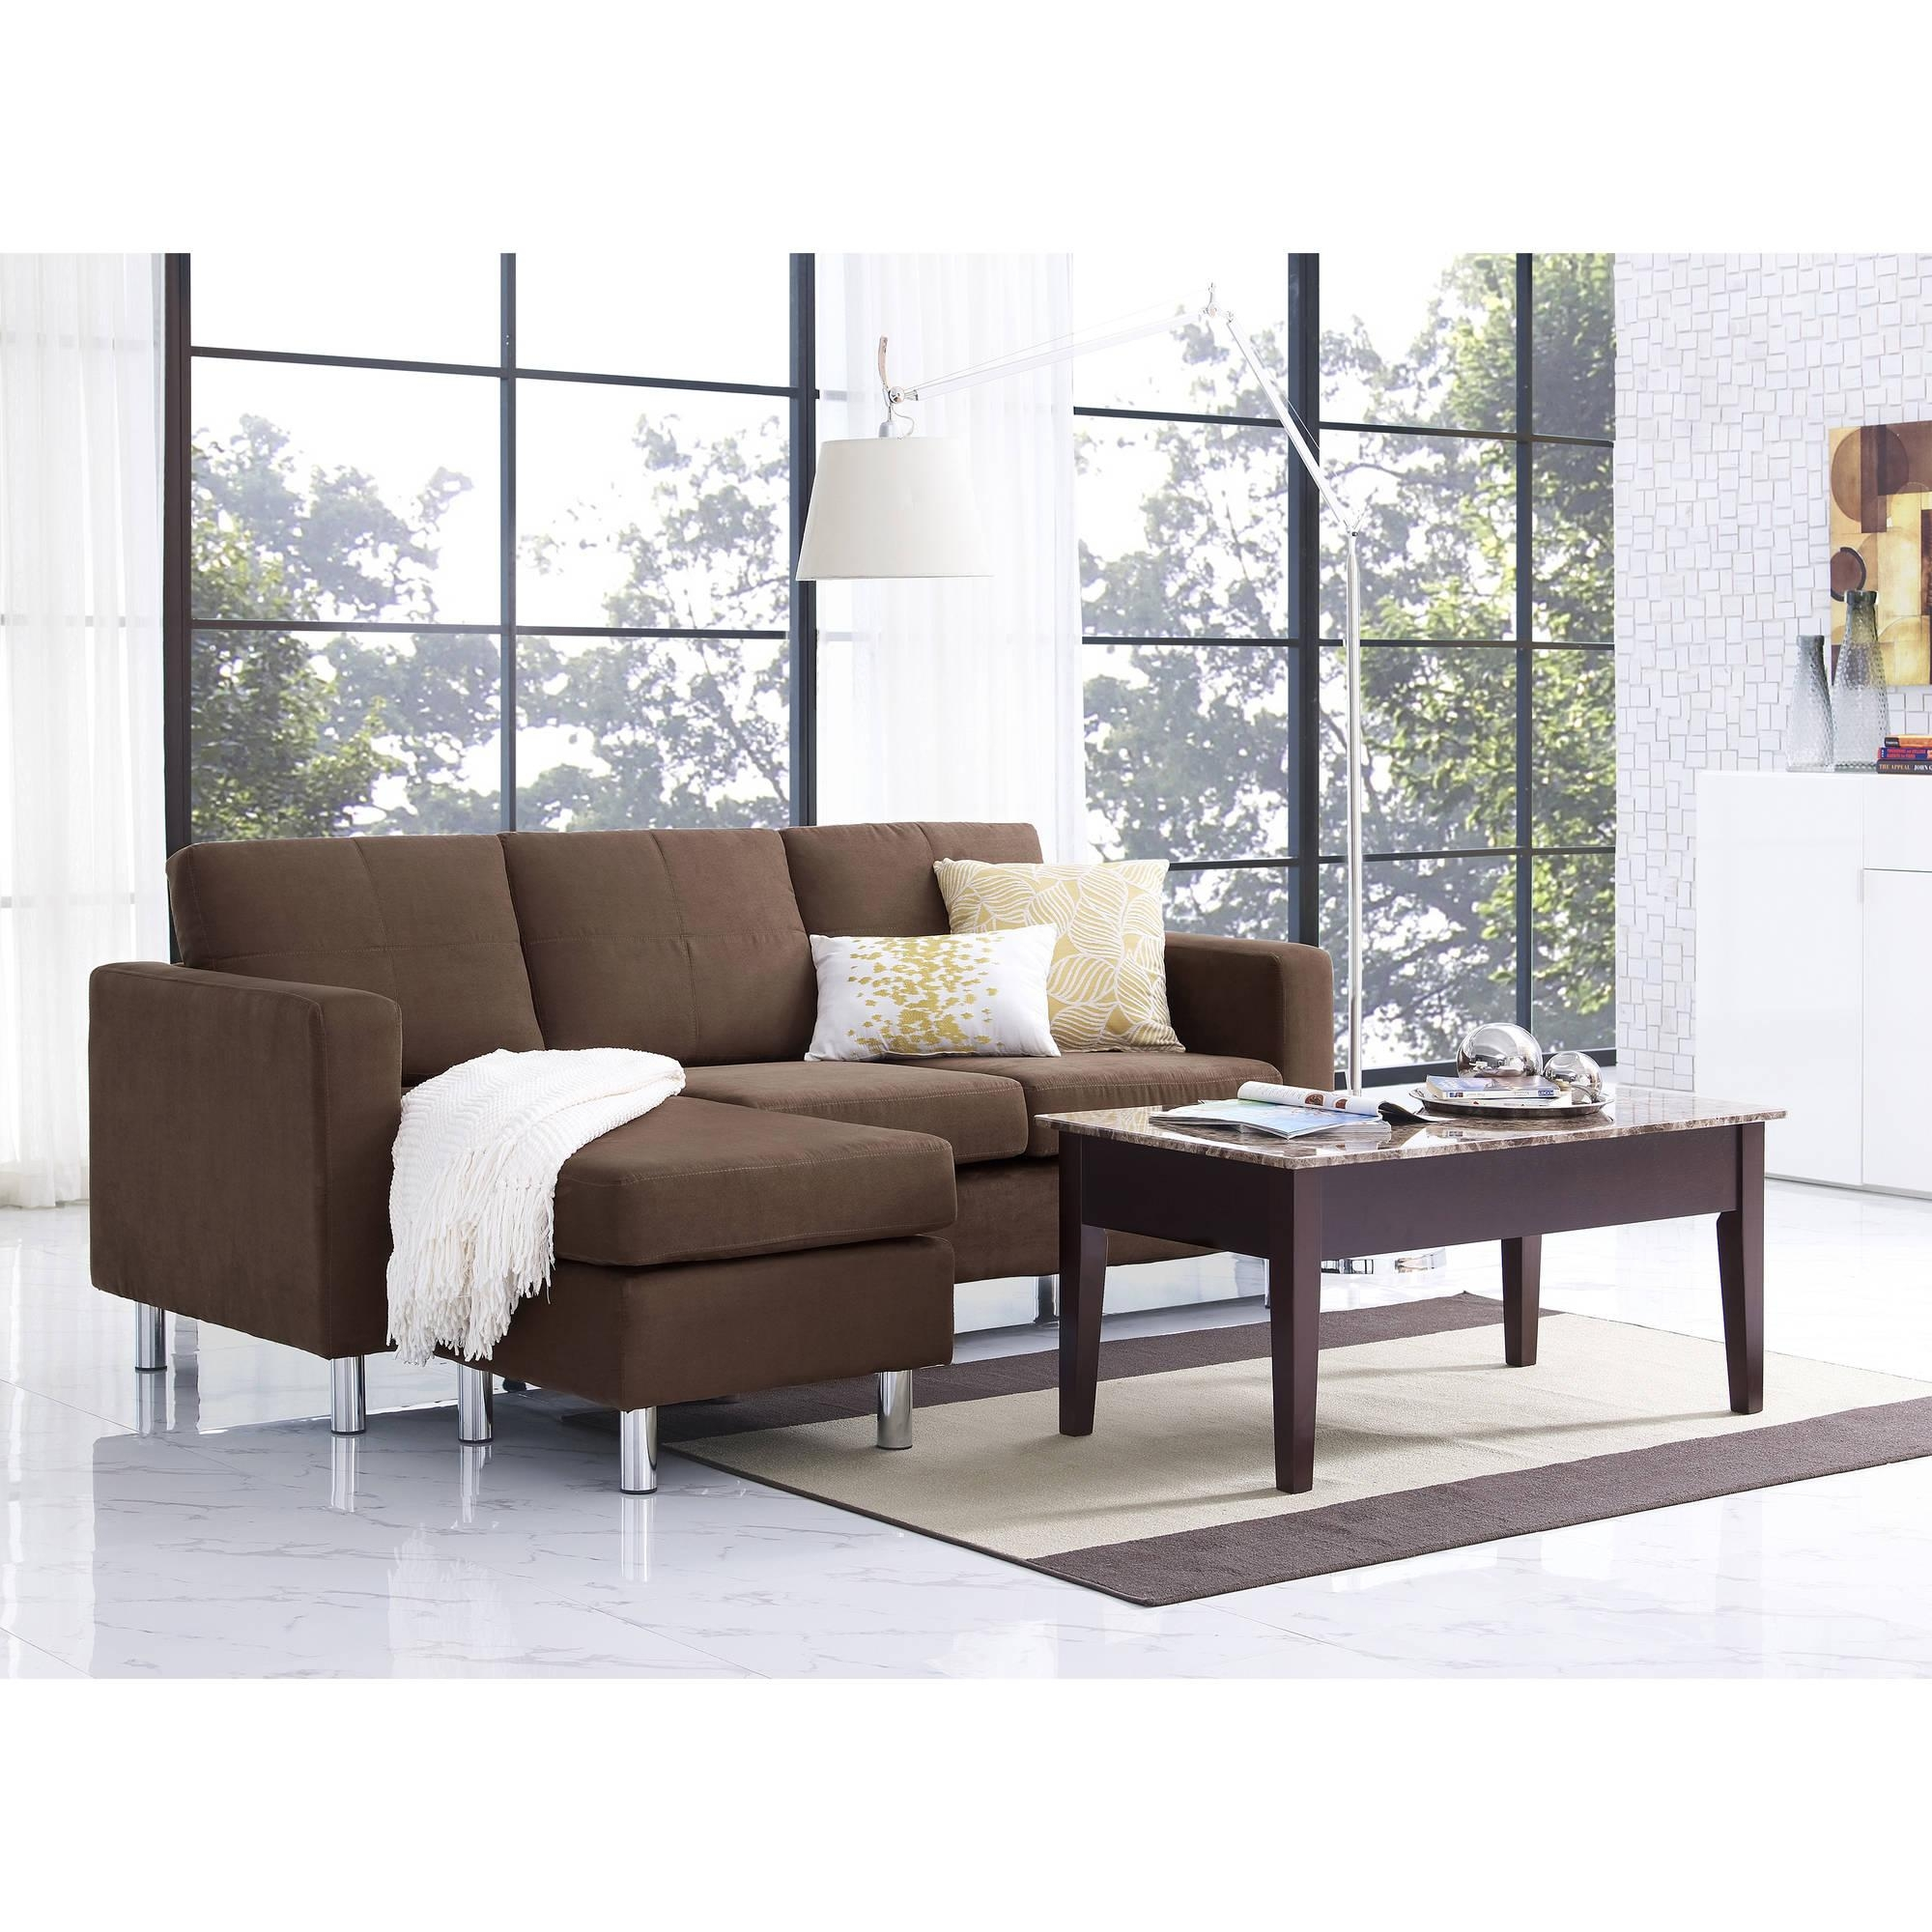 Dorel Living Small Spaces Configurable Sectional Sofa, Multiple With Sectional Small Space (Image 7 of 20)